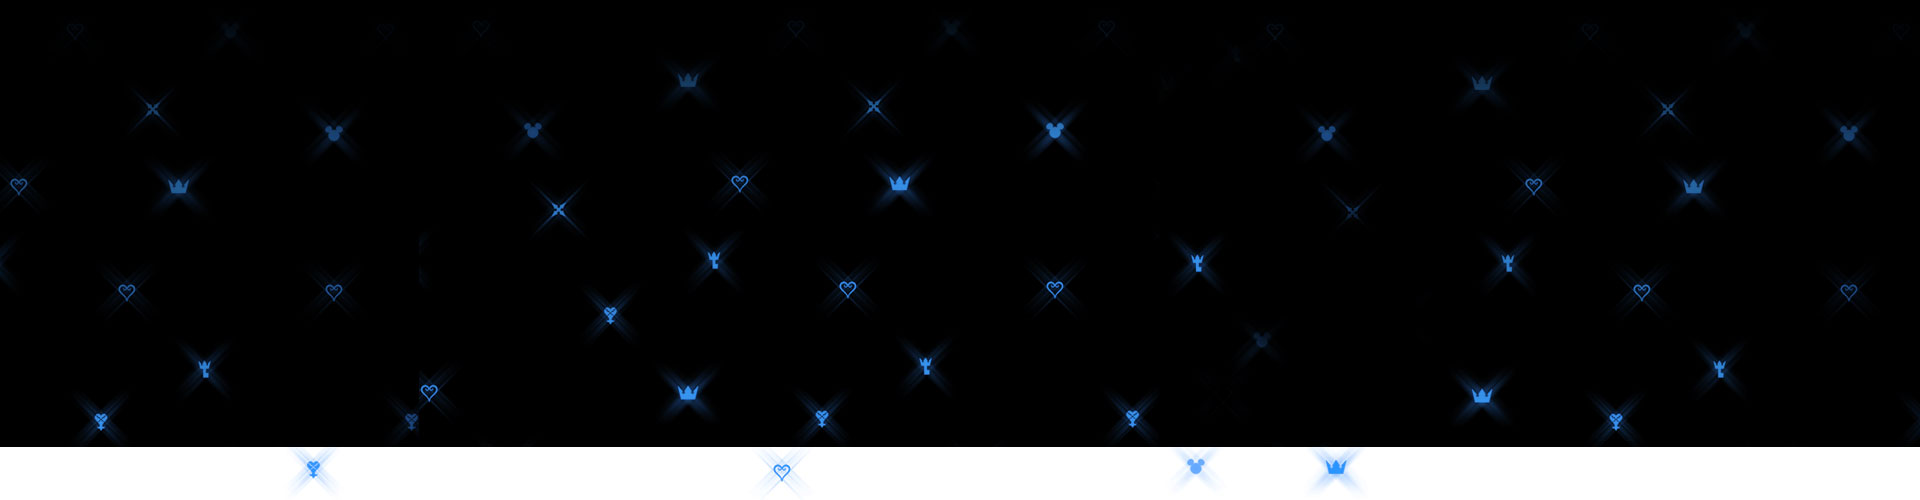 Background of bright blue Disney and Kingdom Hearts logos